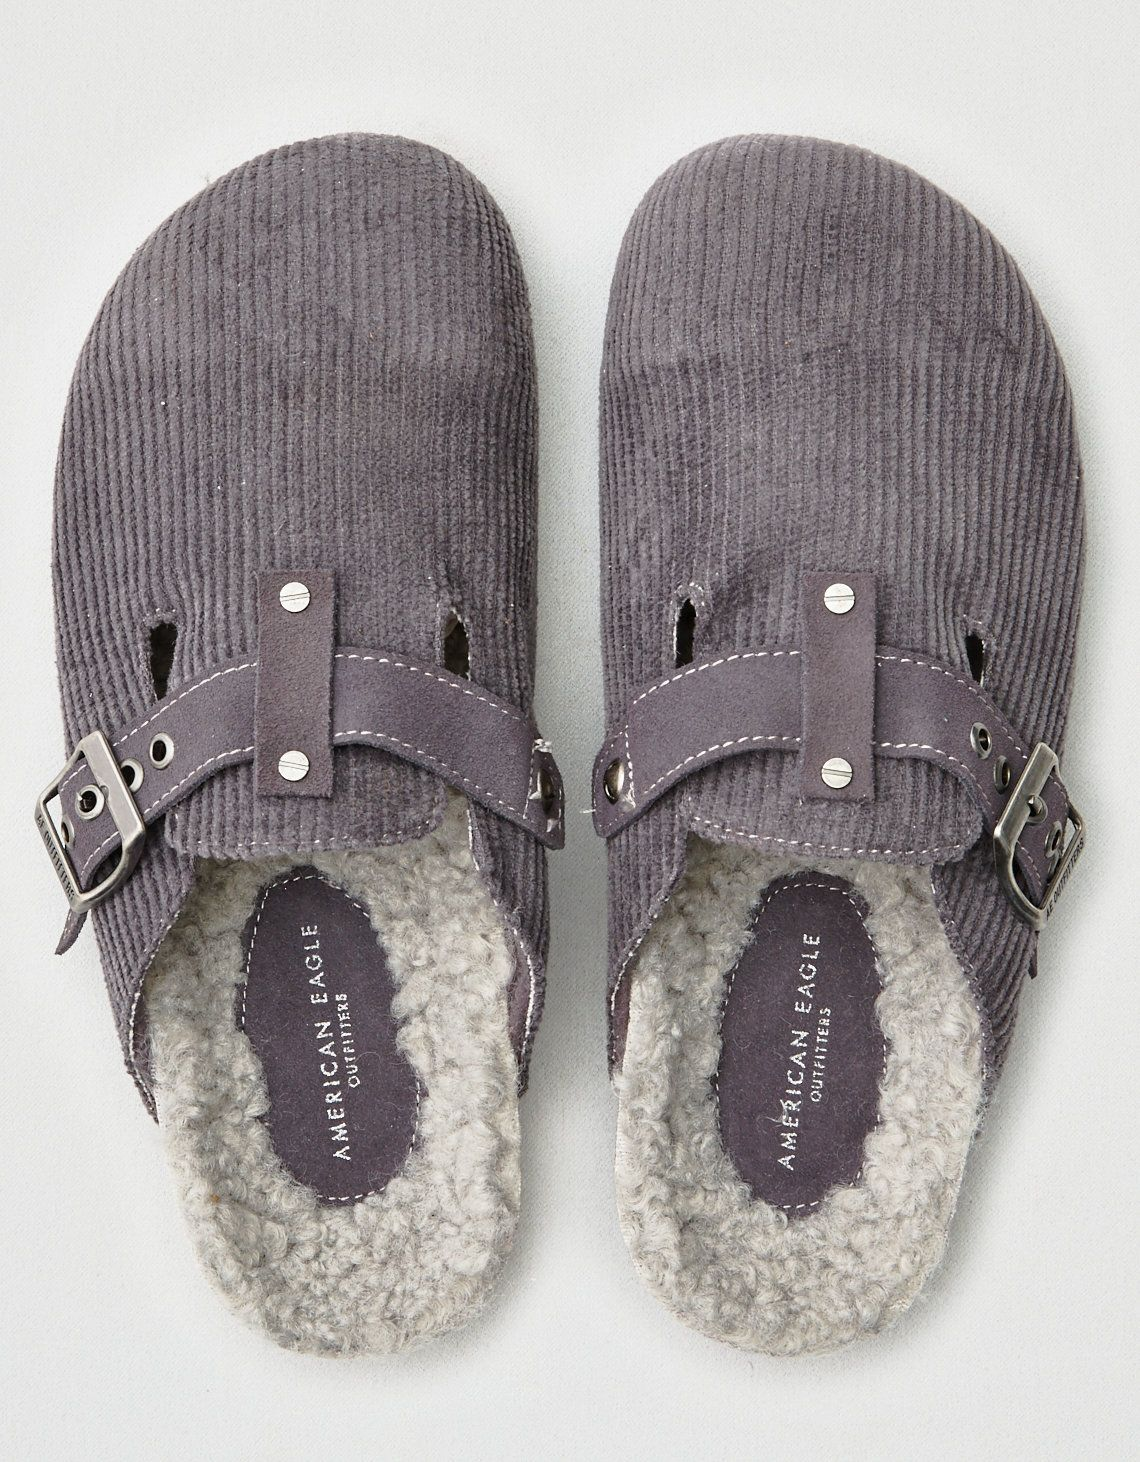 fa304ba3e1a6 Cozy Knock Off Birkenstocks - American Eagle